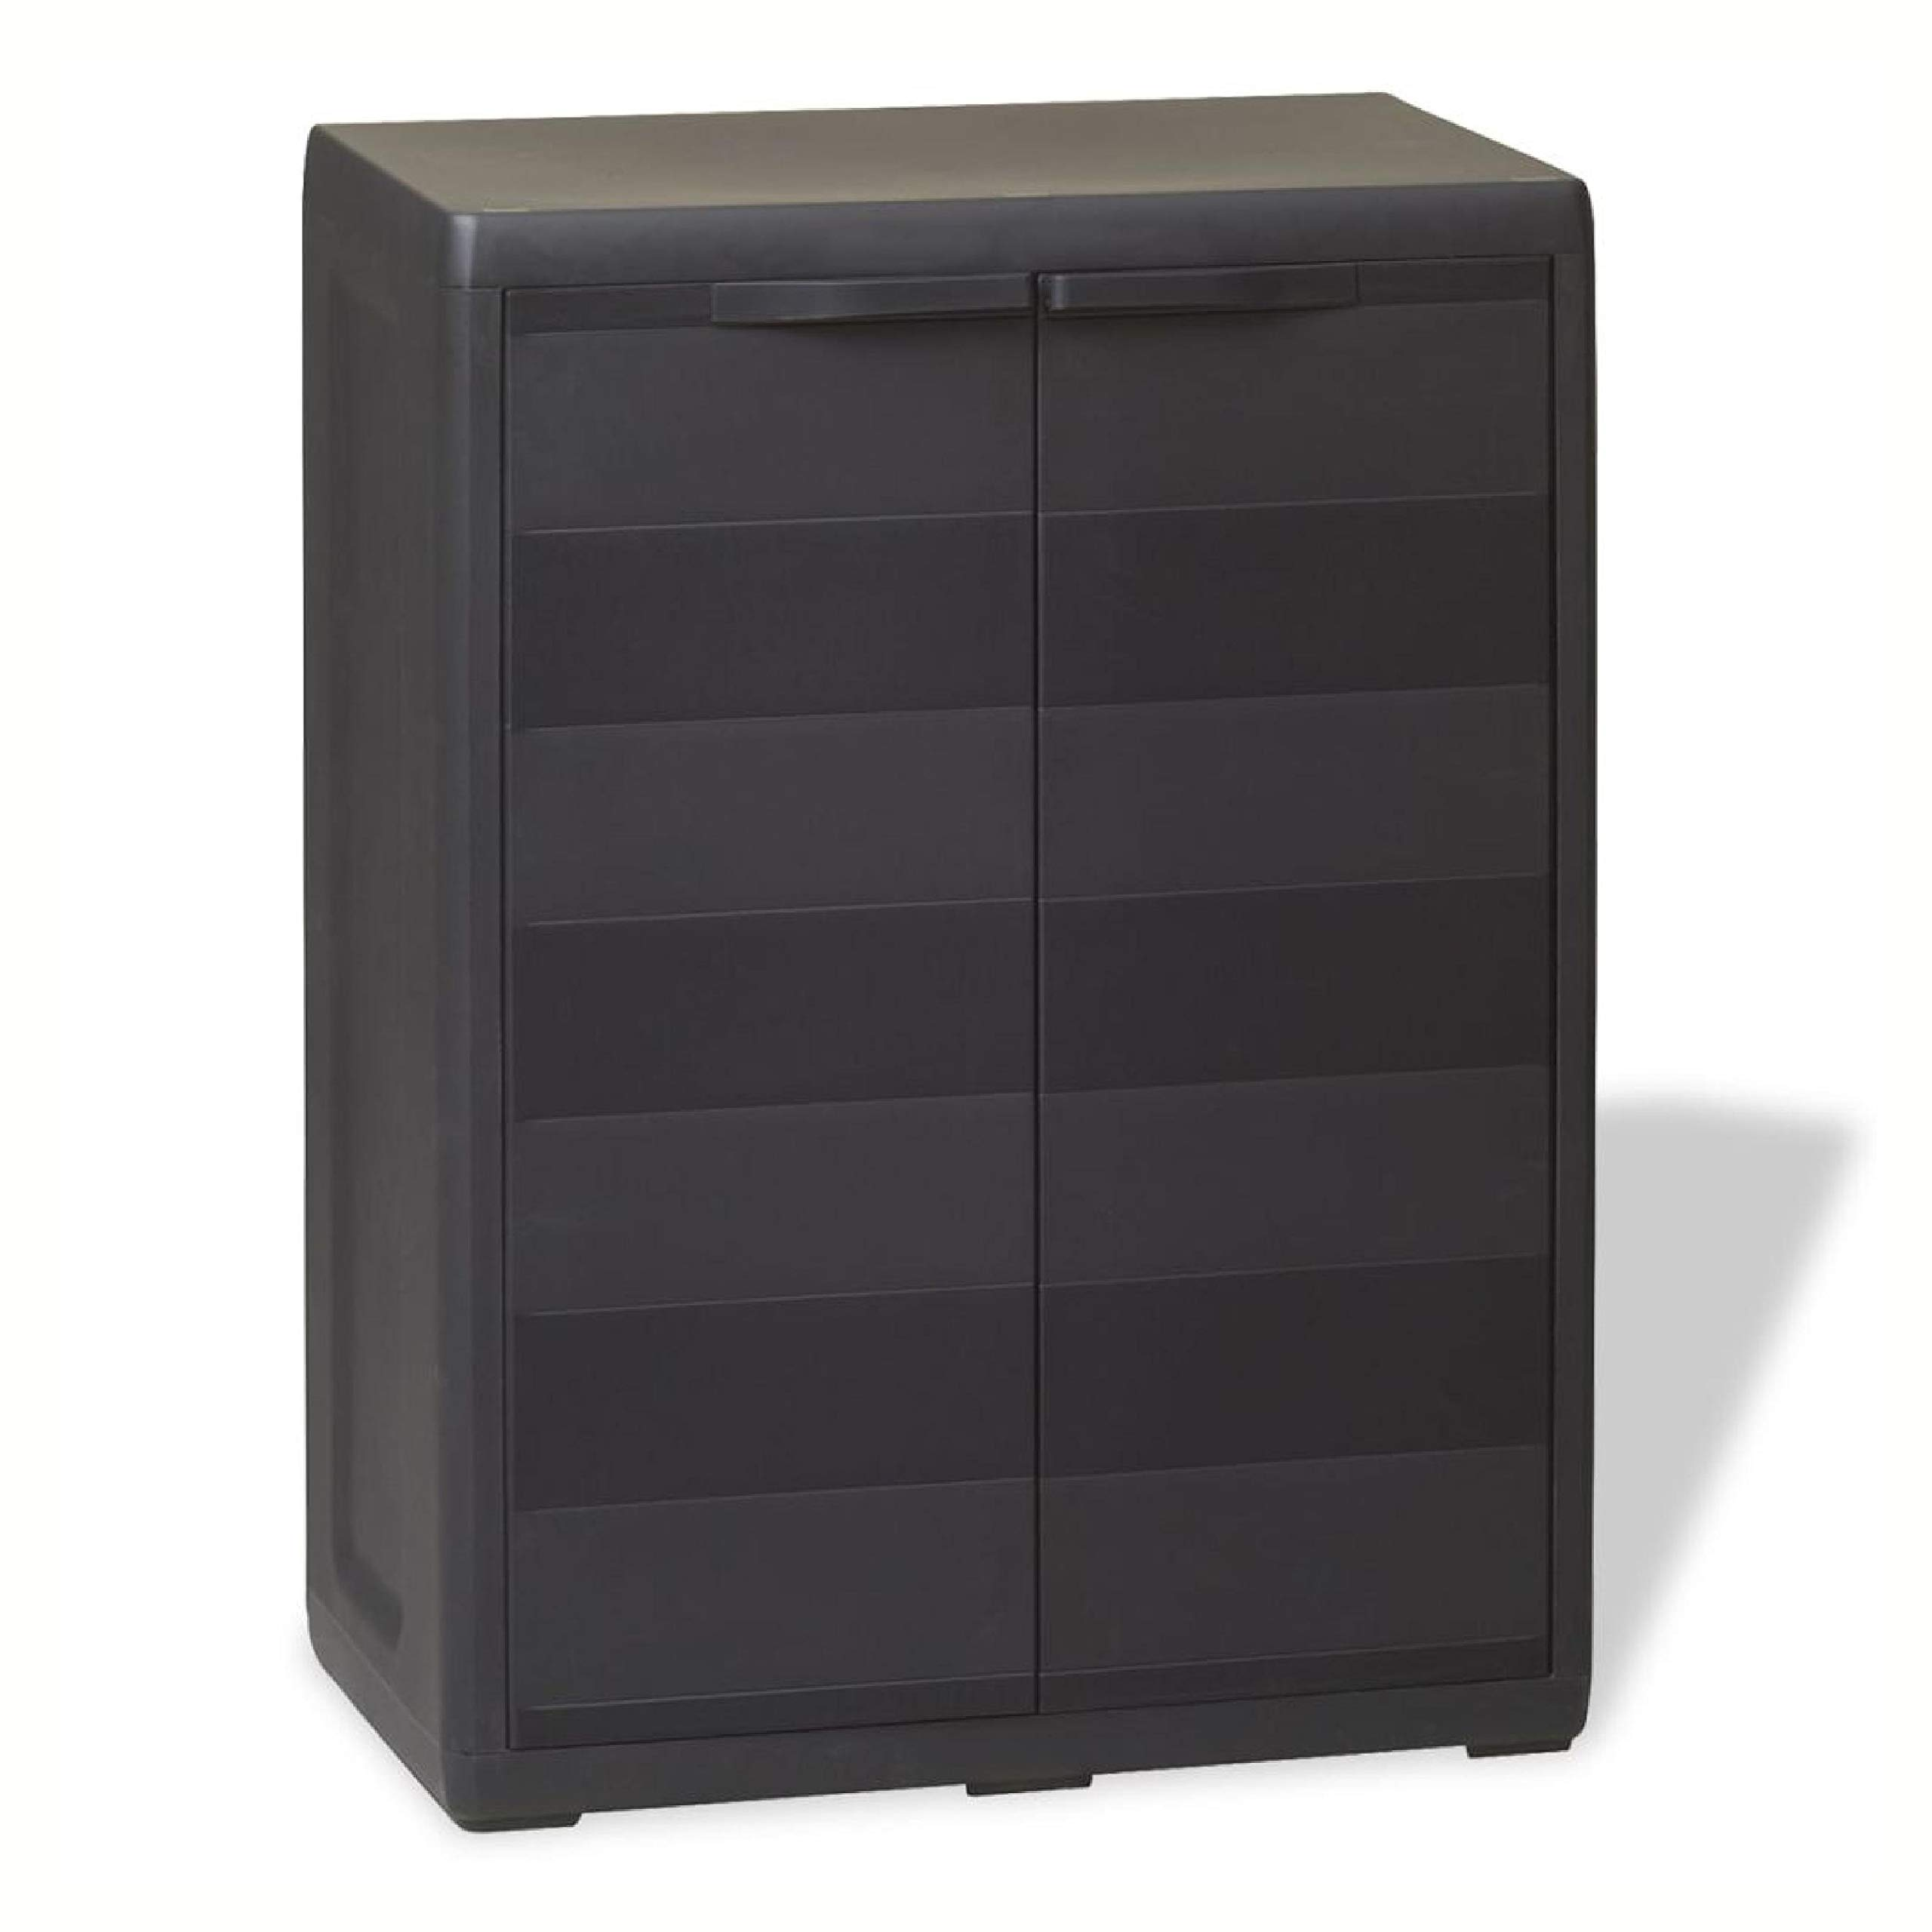 Storage Cabinet & Locker, Garden Storage Cabinet with 1 Shelf Black